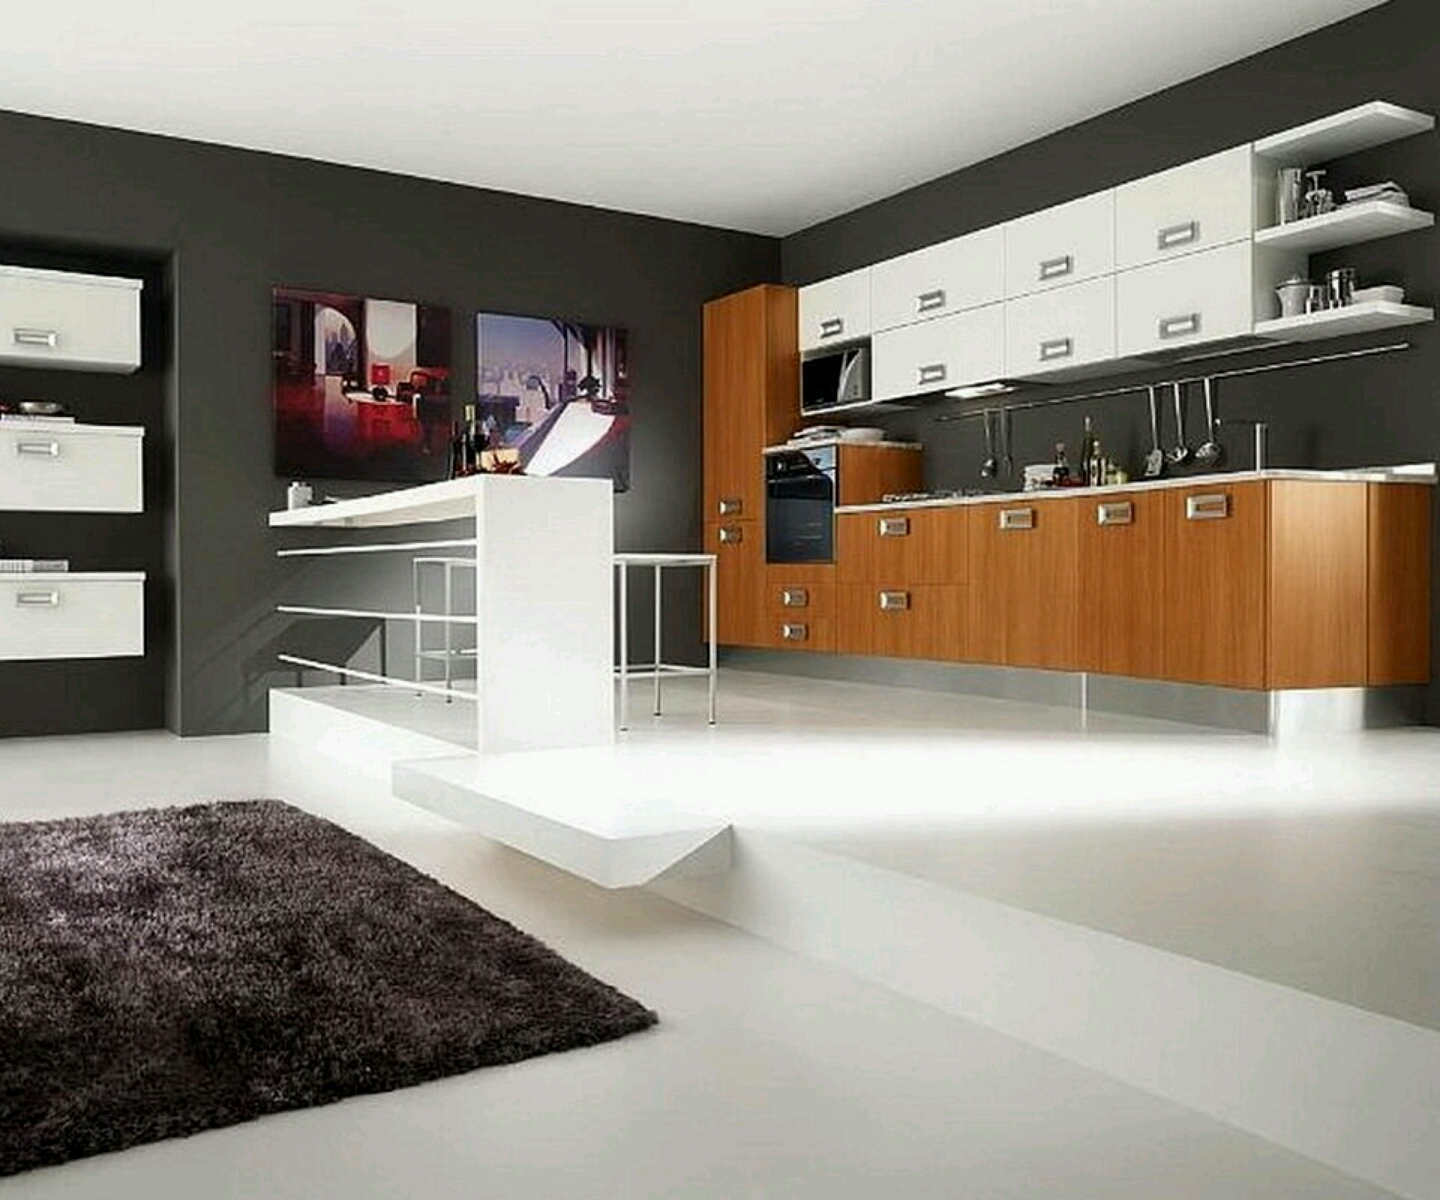 New home designs latest ultra modern kitchen designs ideas - New ideas contemporary kitchen design ...